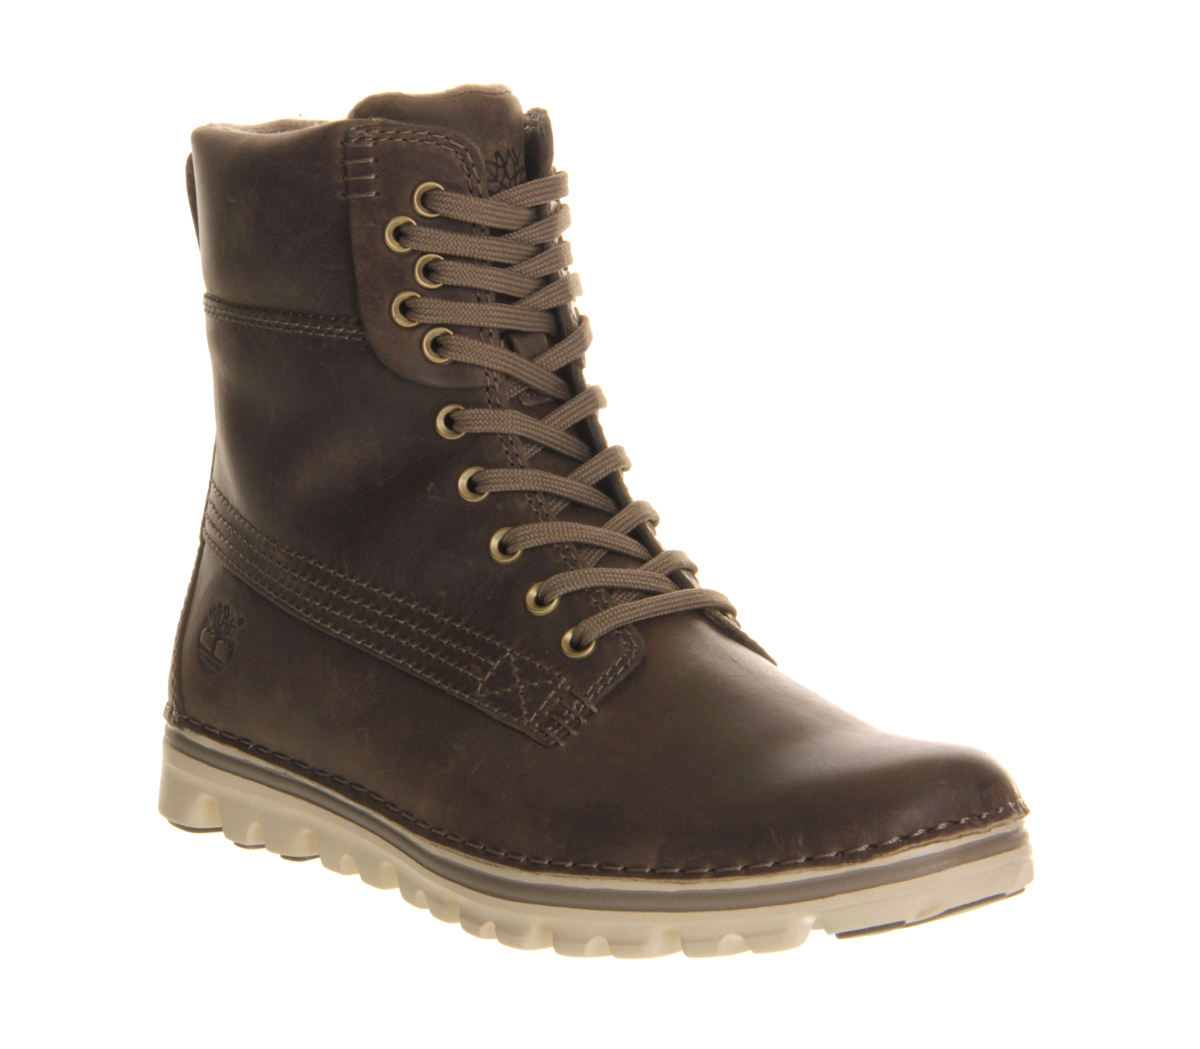 New The Iconic 6inch Timberland Boot Has Stood The Test Of Time  Comfort Is Paramount For These Heritageinspired Boots From Sorel $220, Sorelcom But With The Fresh Mix Of Gray And Tan, Your Style Will Be On Point As Well Seam Sealing